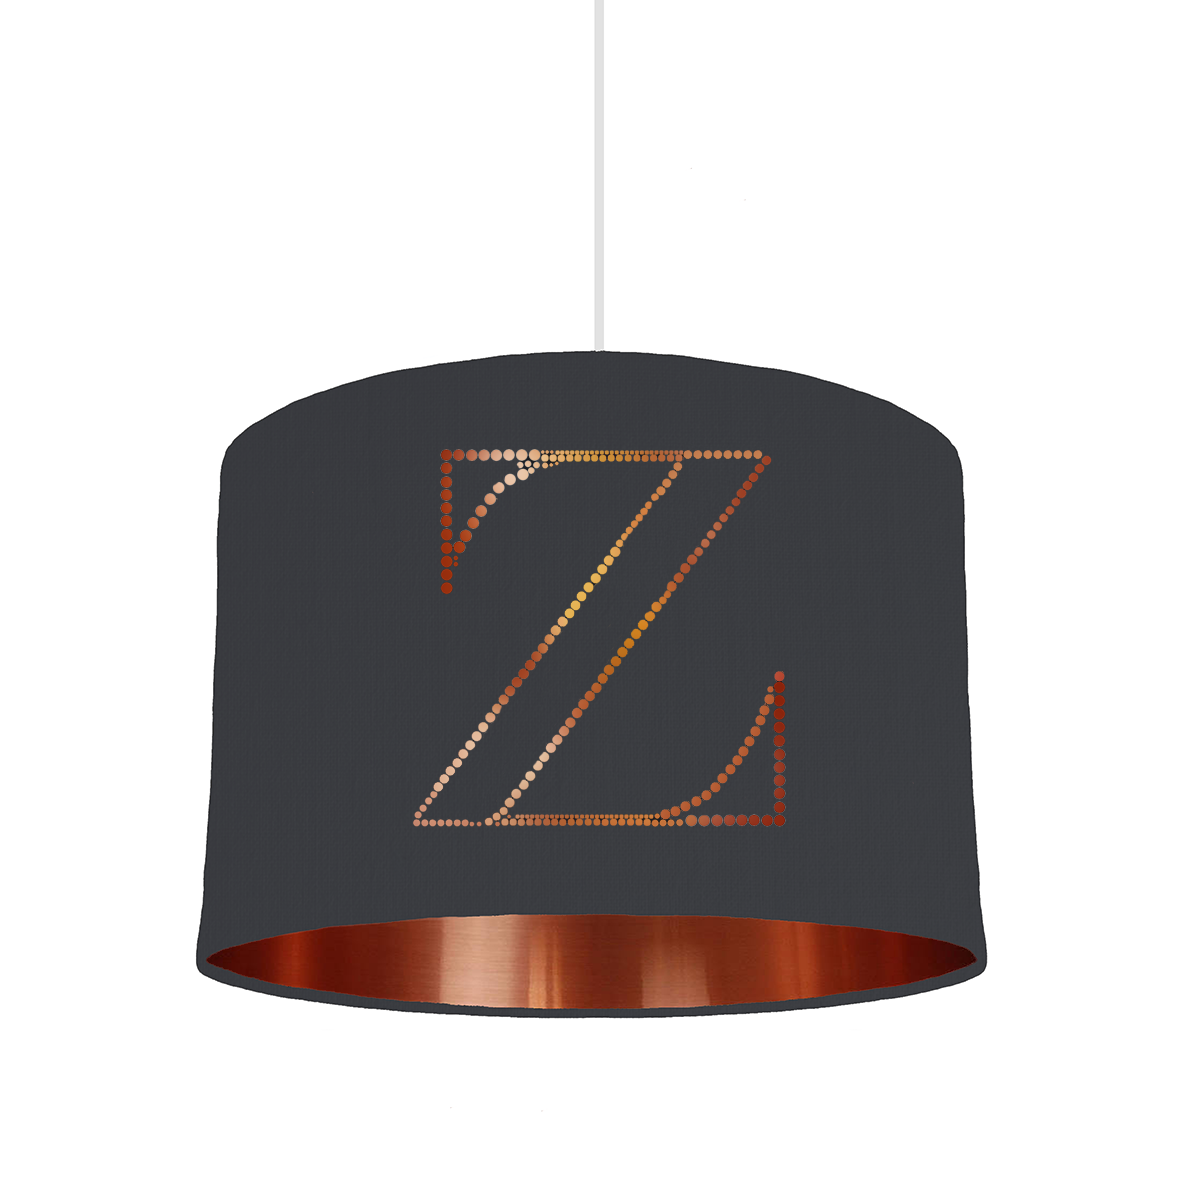 Z Personalised letter lampshade